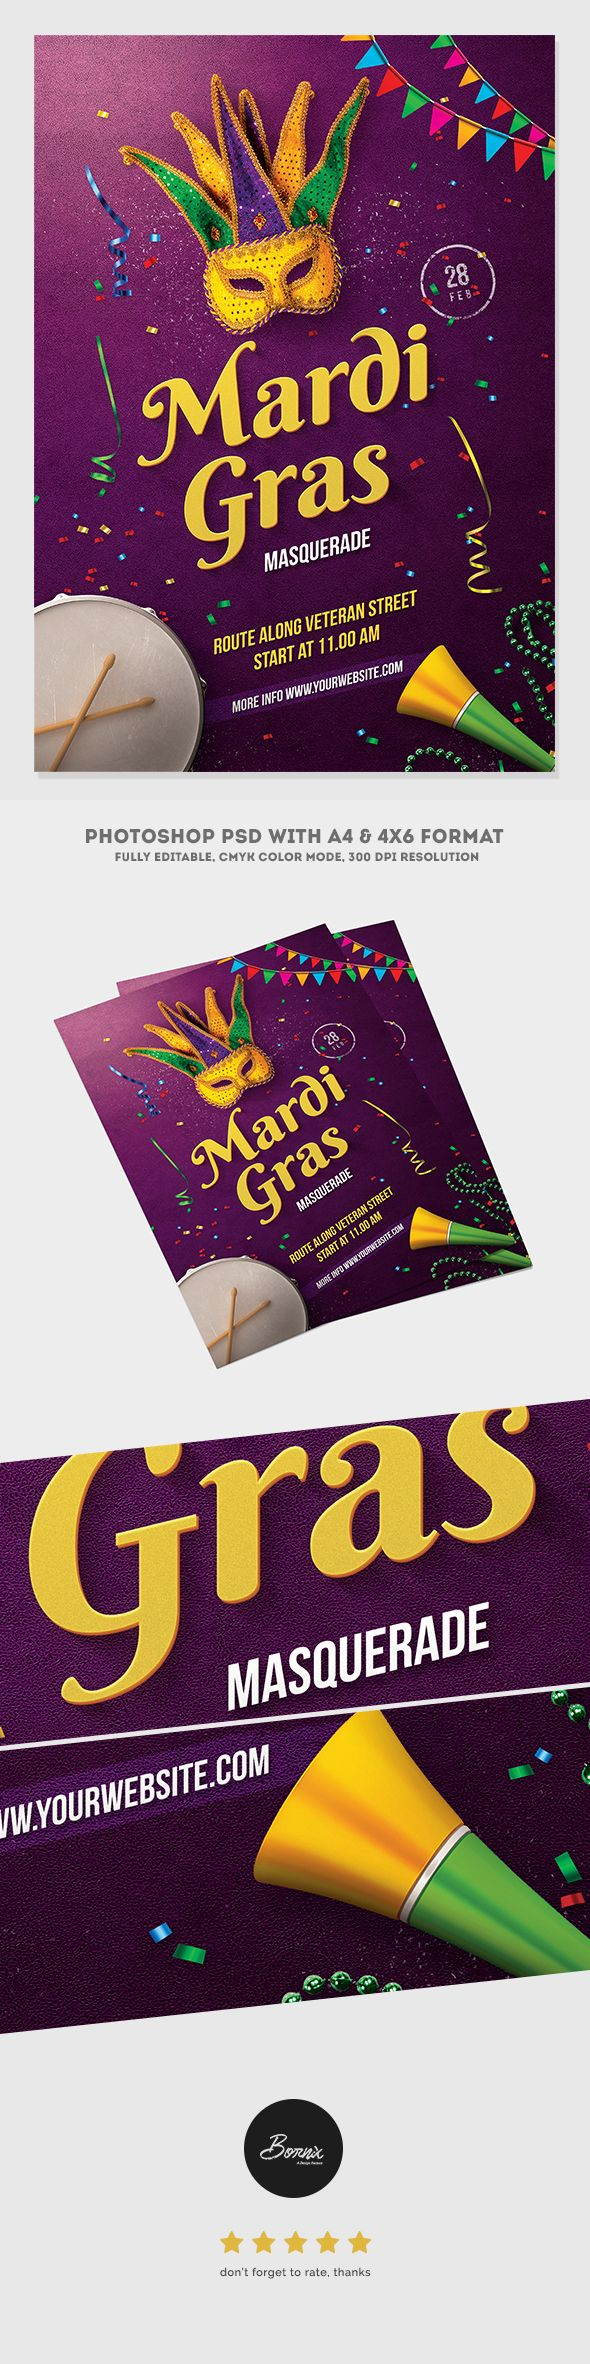 Mardi Gras Masquerade Flyer is flyer template for Photoshop, perfect to  promote your next Mardi